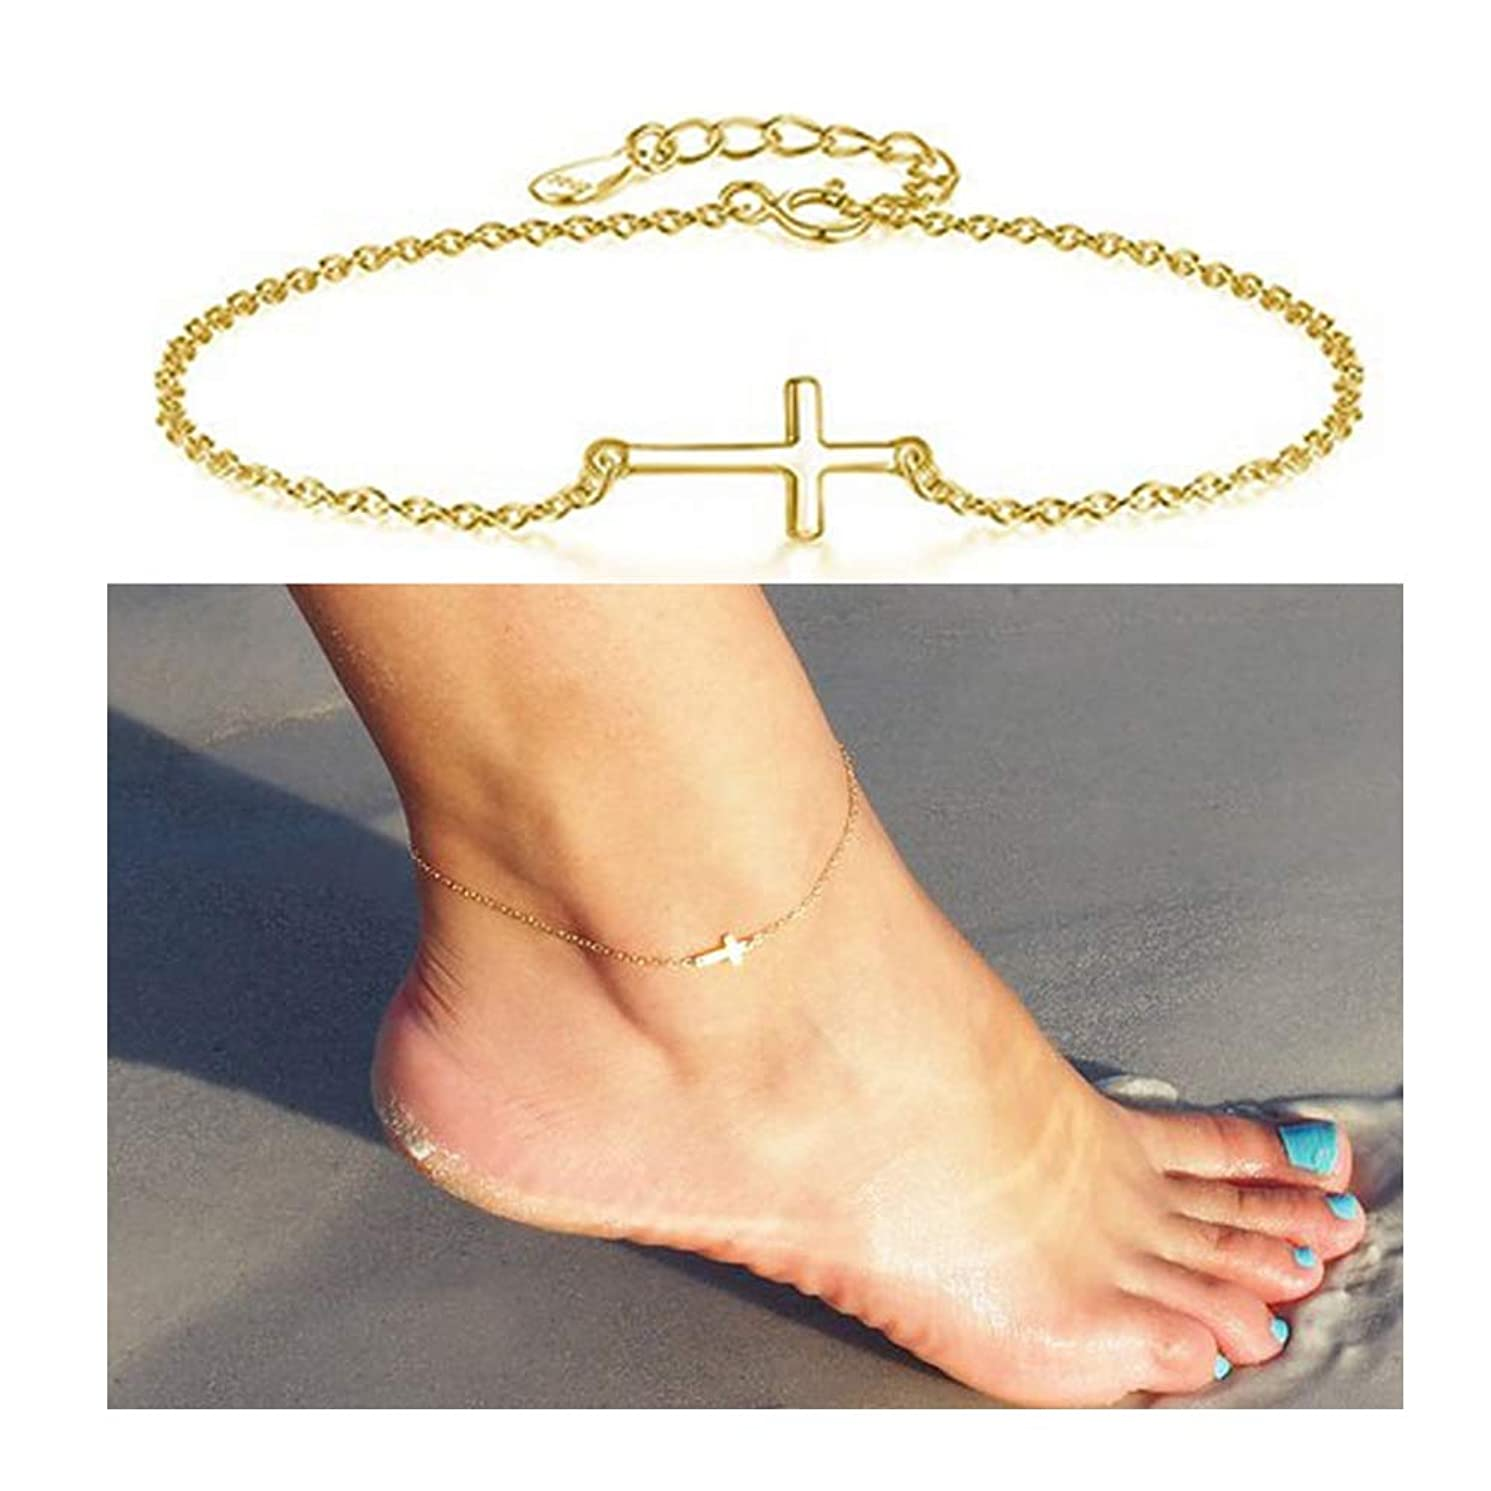 choice of all Sideways Cross Anklet Bracelet for Women Crucifix Ankle Chain Foot Jewelry